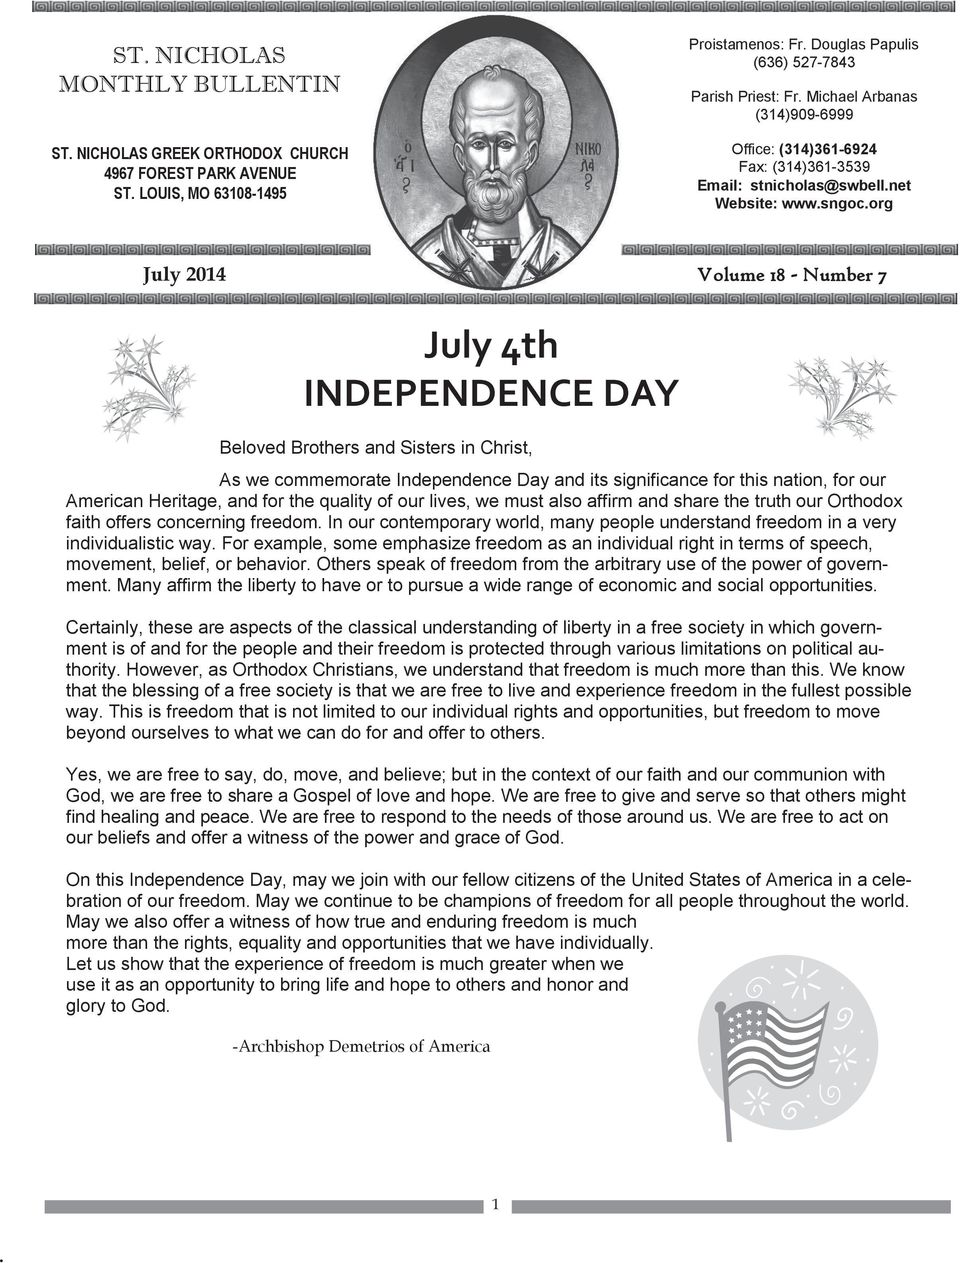 Christ, As we commemorate Independence Day and its significance for this nation, for our American Heritage, and for the quality of our lives, we must also affirm and share the truth our Orthodox